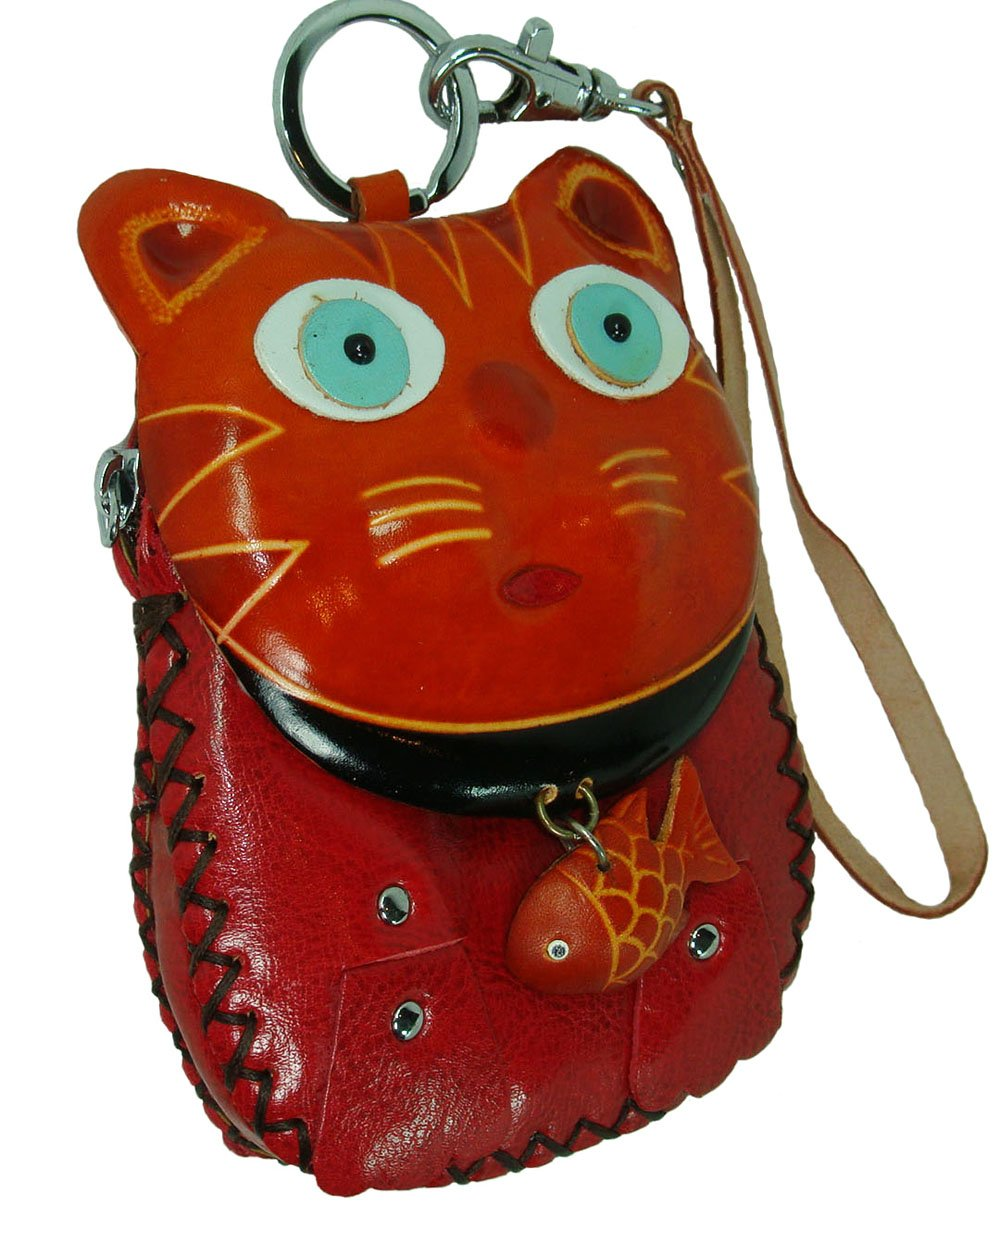 A Cat Holding a Fish Genuine Leather Wristlet Bag,change//coin Purse,wallet BP Leather D007